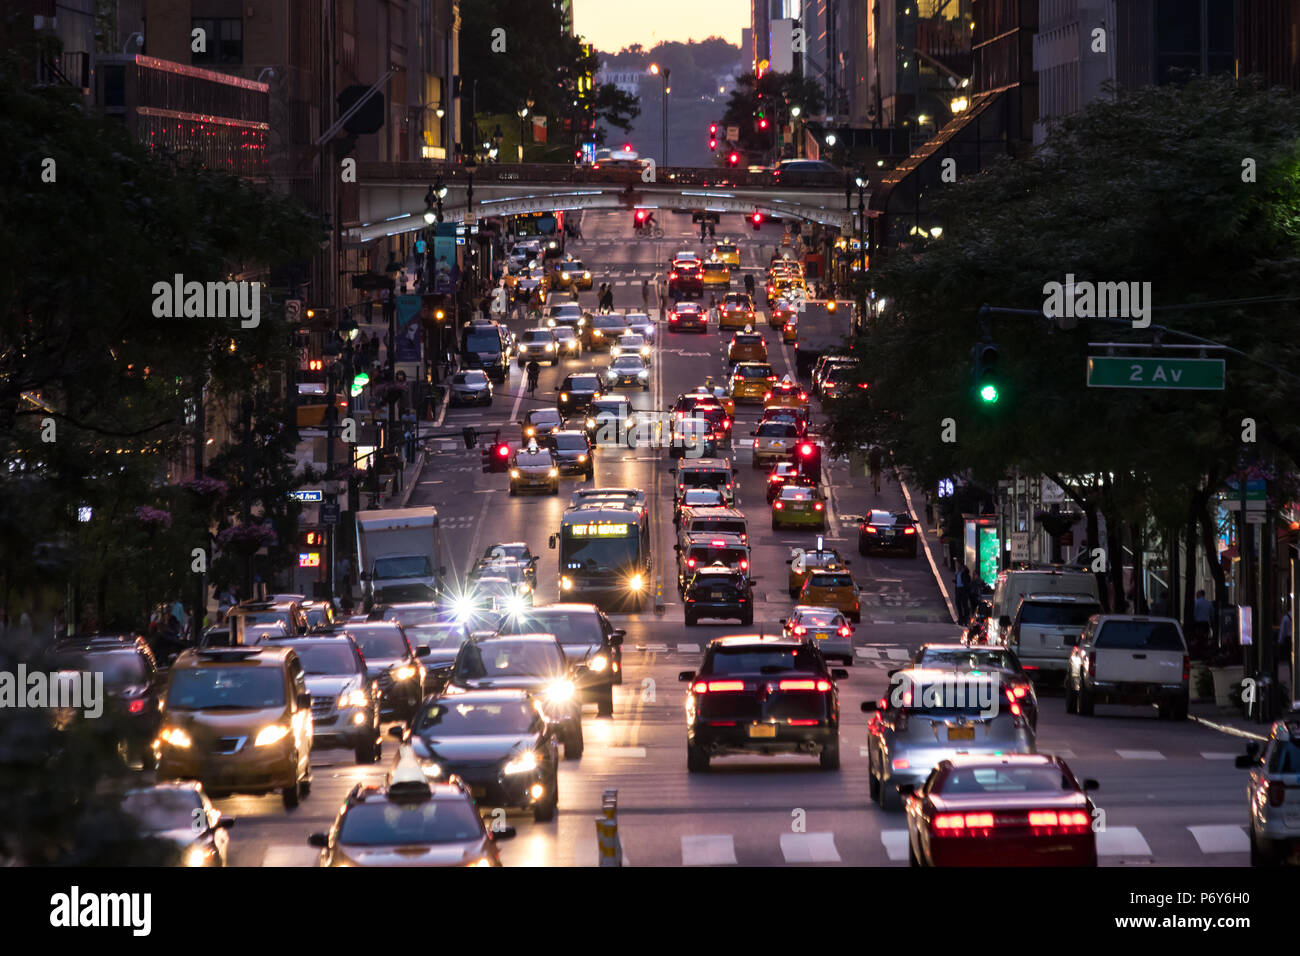 Lights from crosstown traffic on 42nd Street in Midtown Manhattan New York City - Stock Image